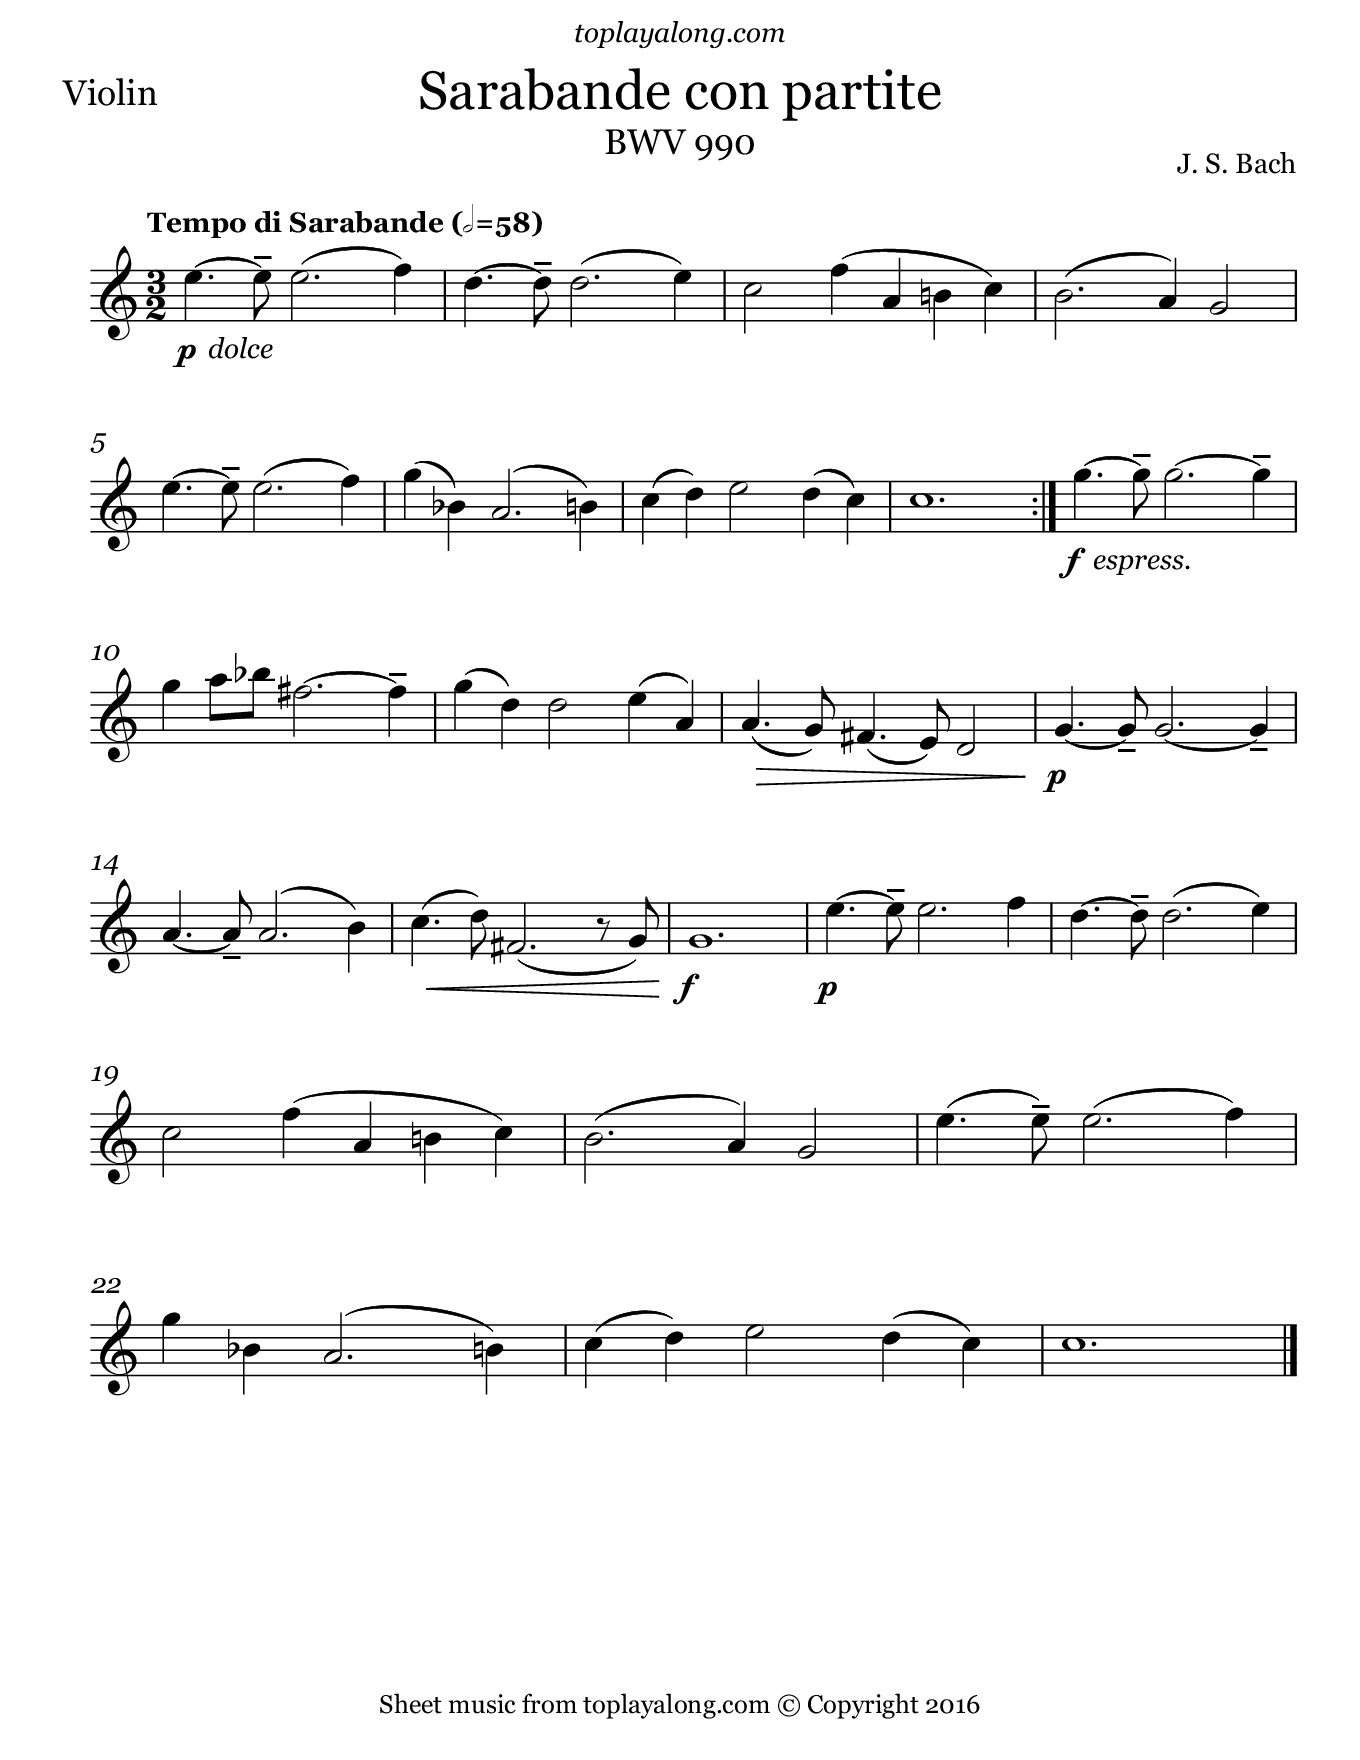 Sarabande con partite by J. S. Bach. Sheet music for Violin, page 1.